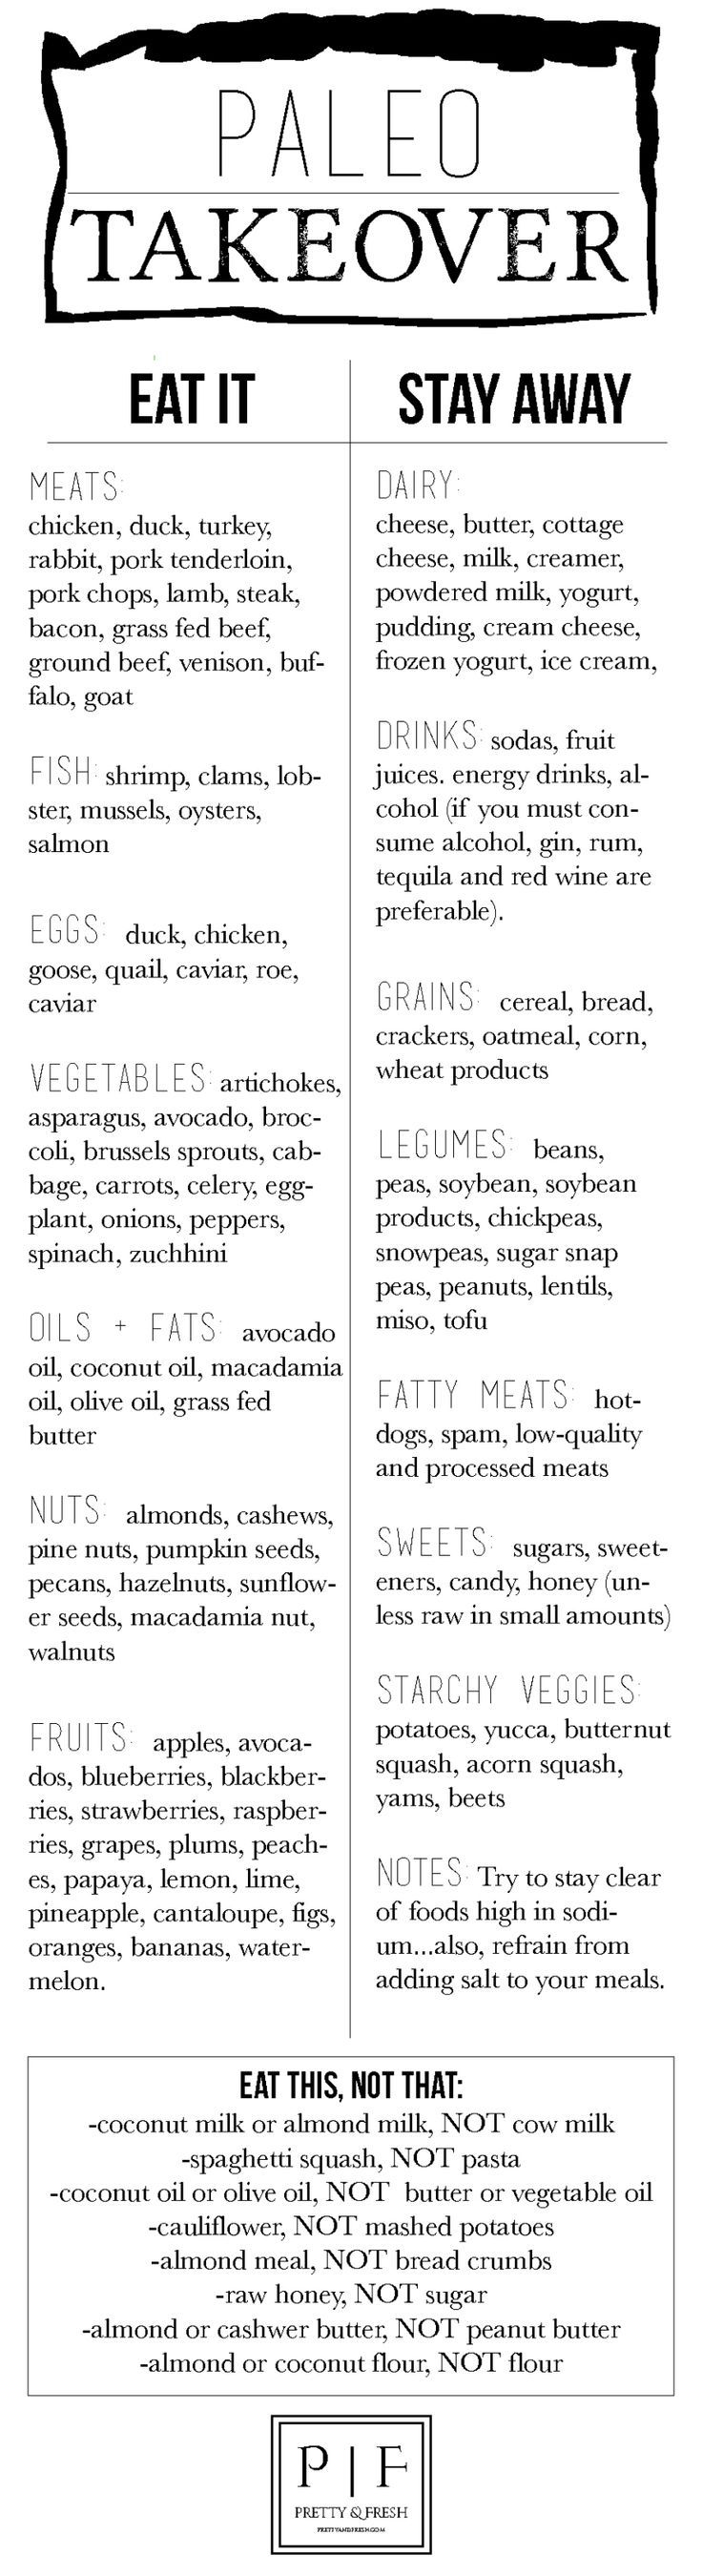 "Diabetic diet foods Paleo Takeover Infographic : Eat It, Stay Away Comments: ""I do not strictly adhere to a paleo diet, but these are nice guidelines."" ""Butternut squash and sweet potato are allowed"" ""Dairy is more of a gray area, and at any rate, grains should always be first on the NO pile"""